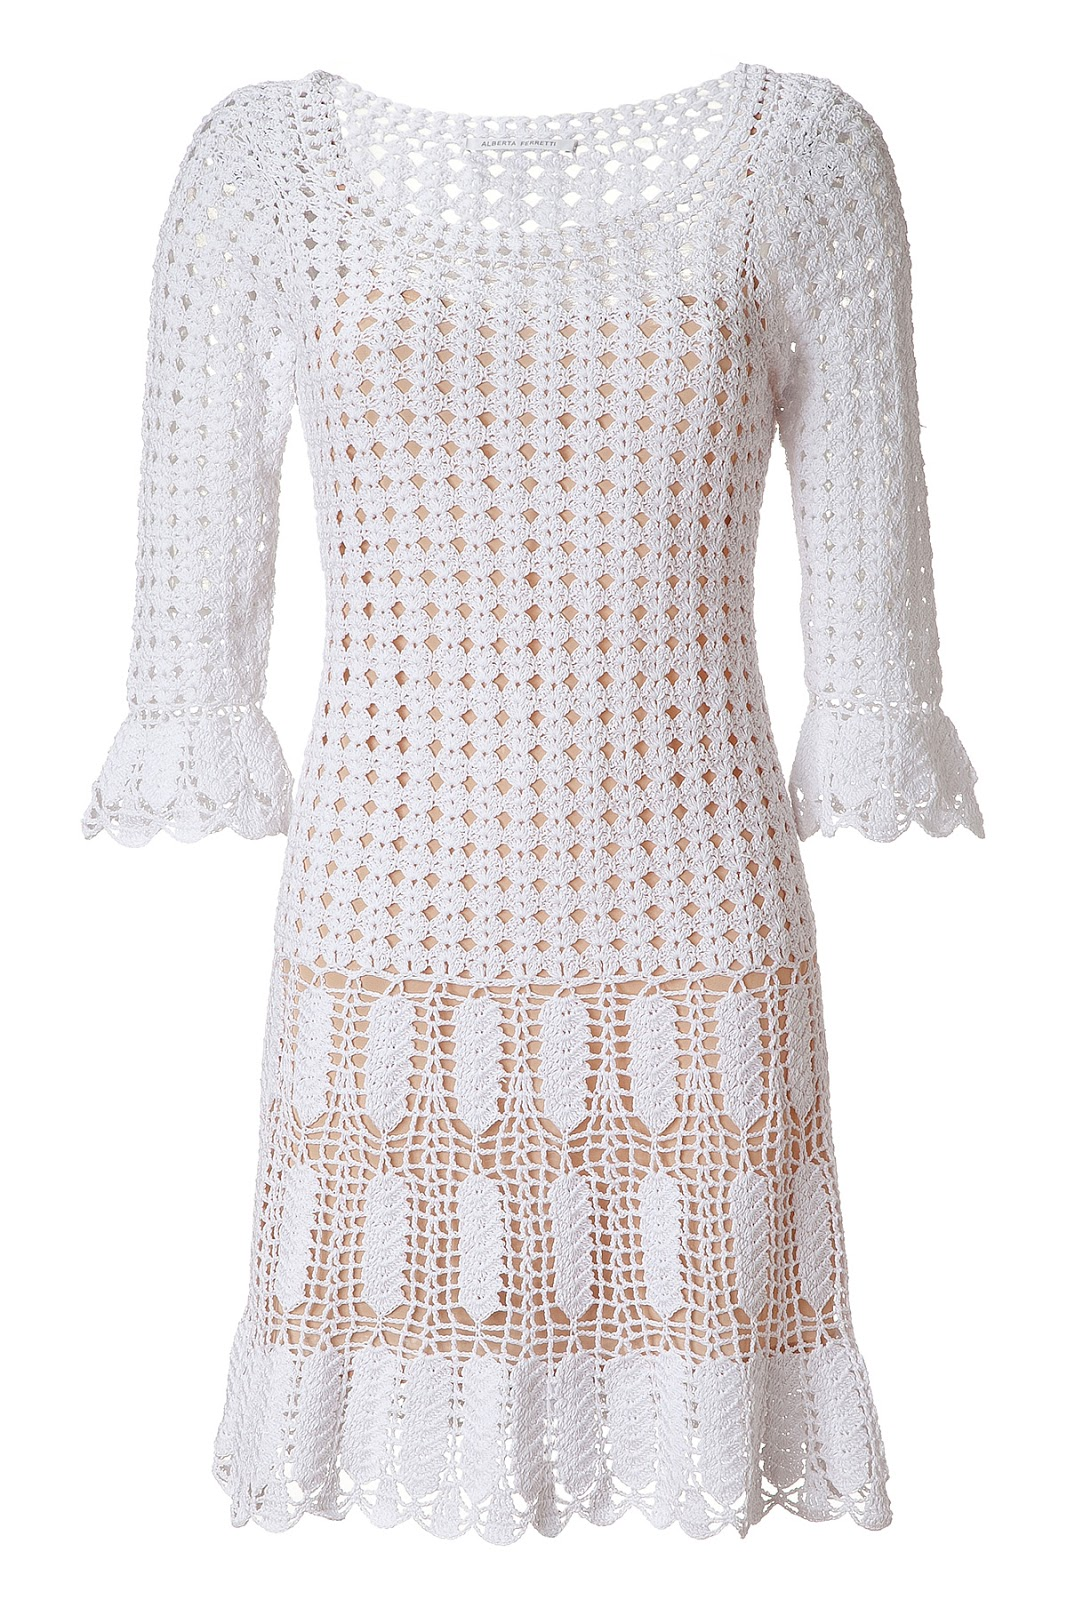 The Woman In White Crochet Dress Make Handmade Crochet